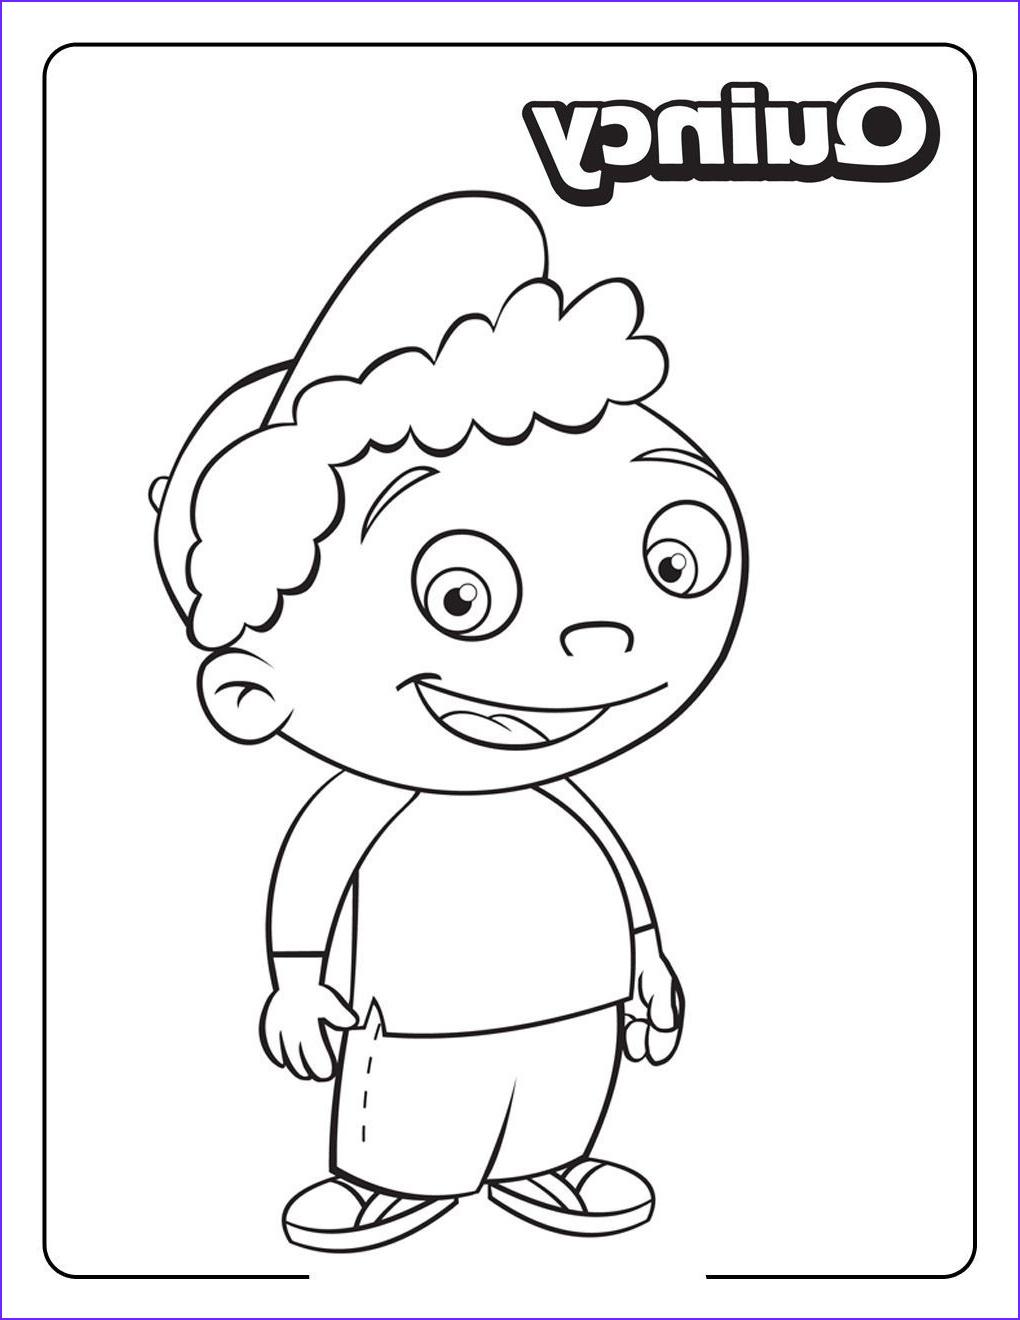 Little Einsteins Coloring Pages Inspirational Images Little Einsteins Quincy